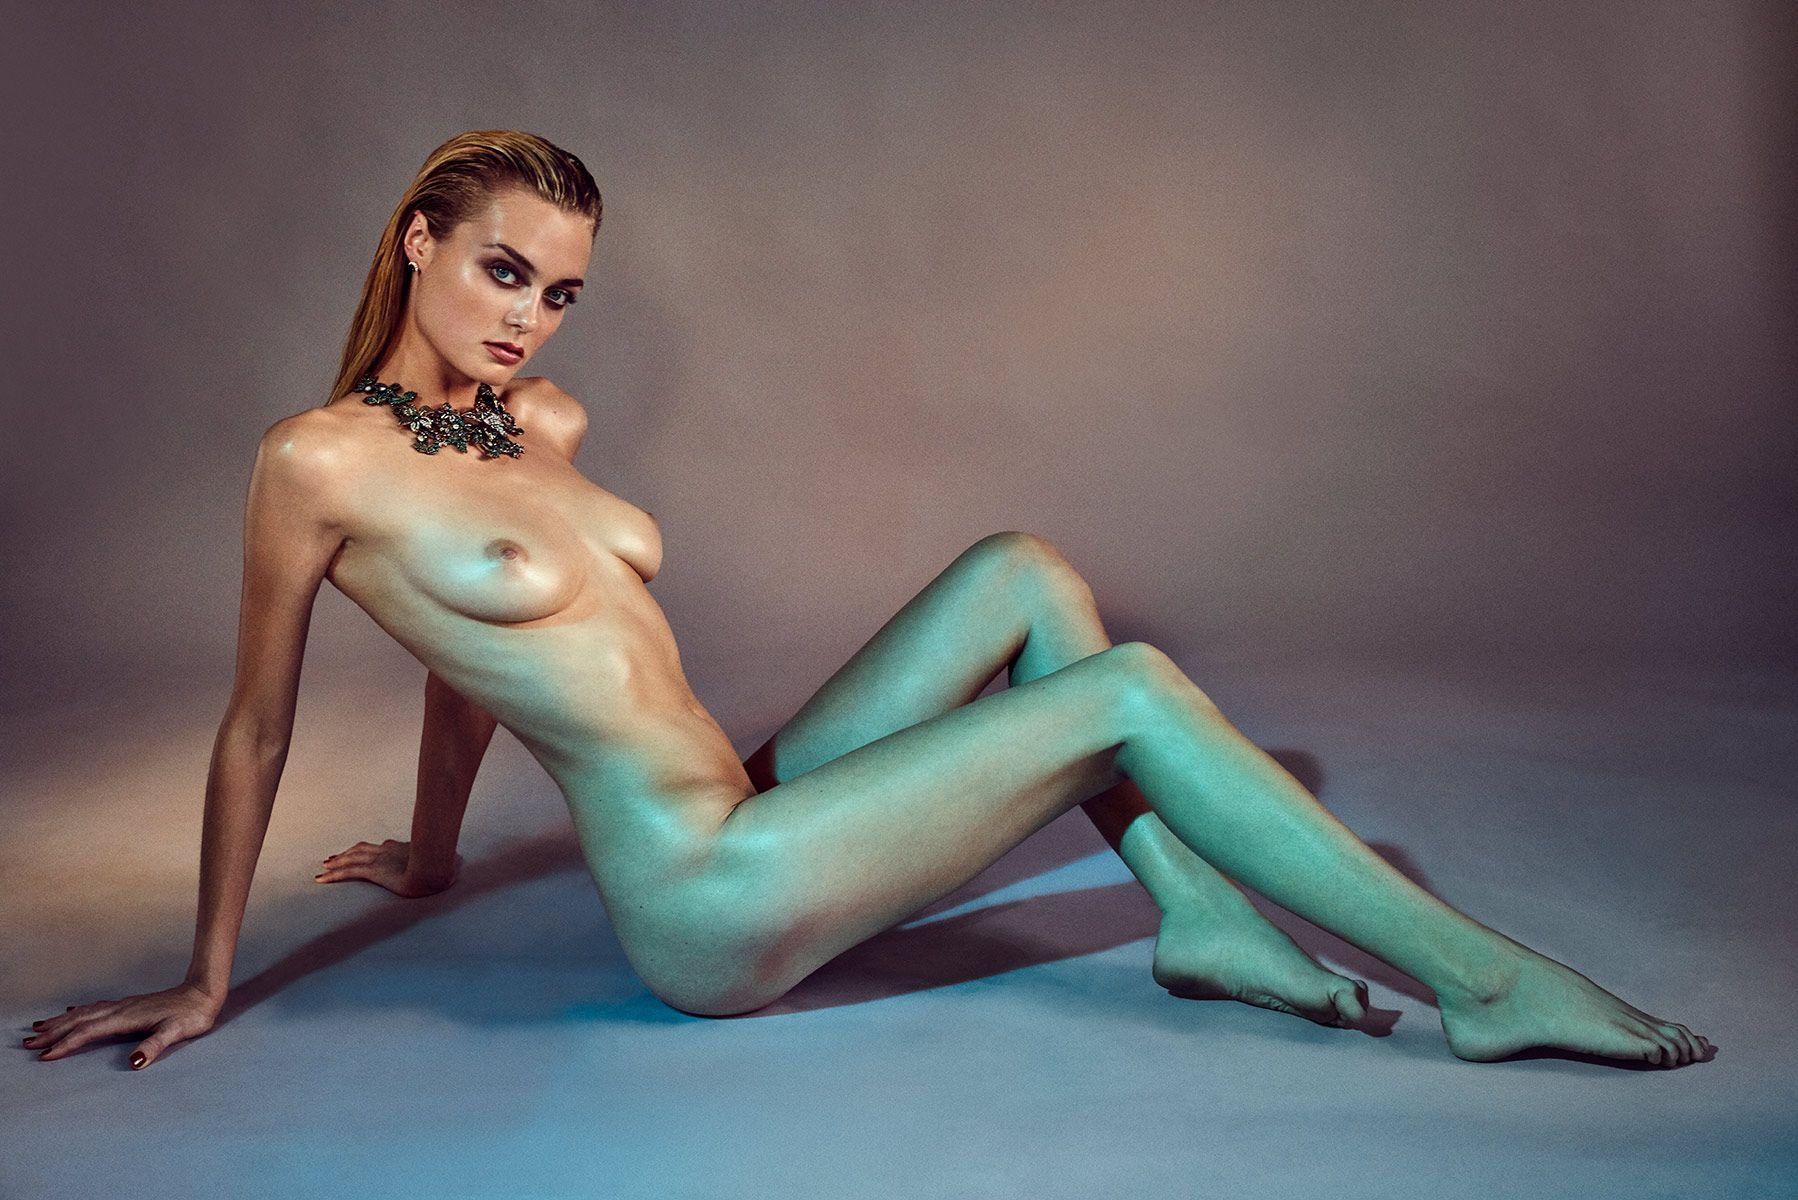 Young Signe Rasmussen Naked nudes (39 photos), Ass, Leaked, Twitter, underwear 2018